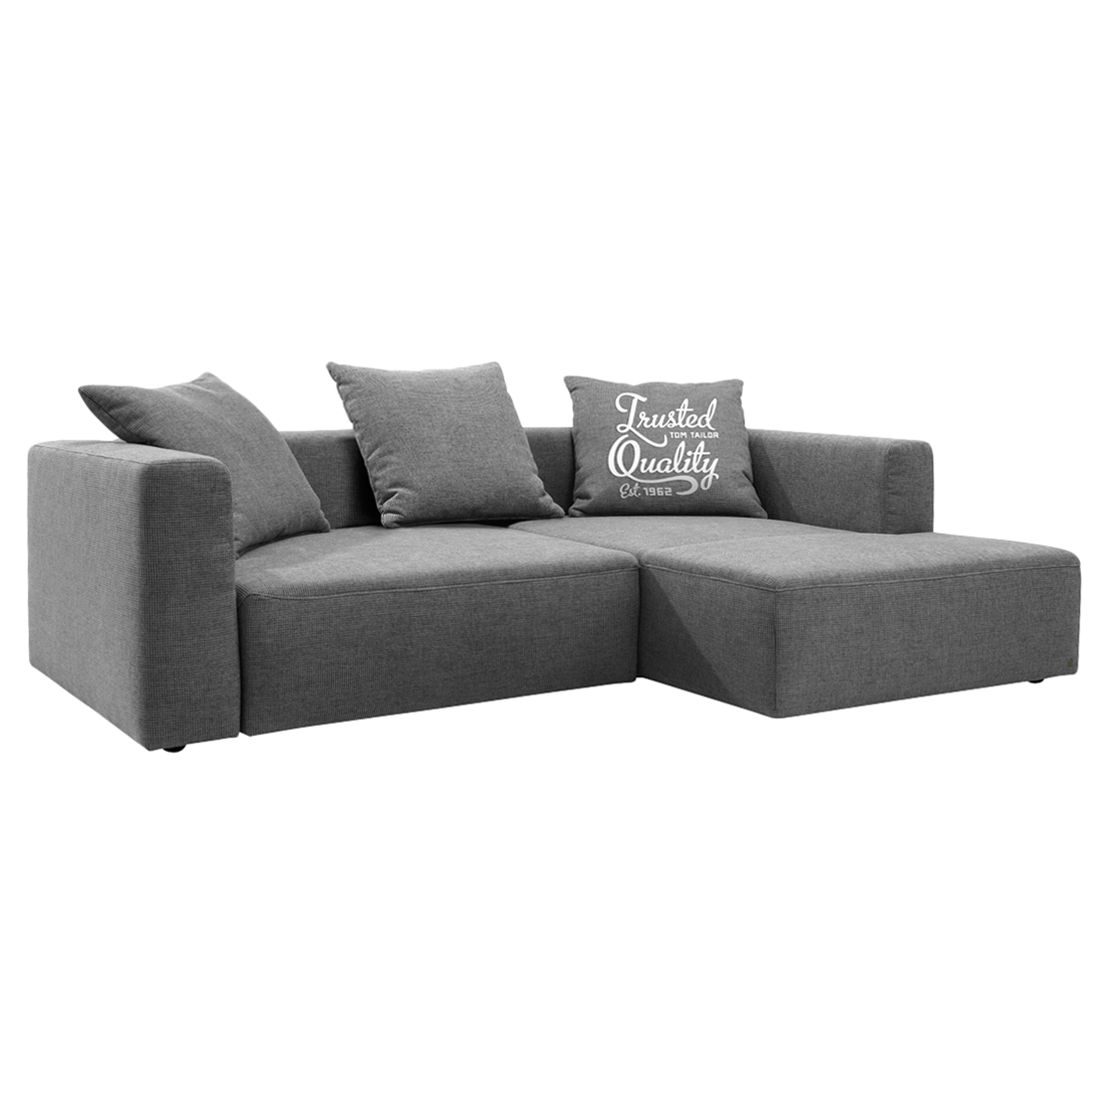 Ecksofa heaven casual webstoff dunkelgrau longchair for Ecksofa trends